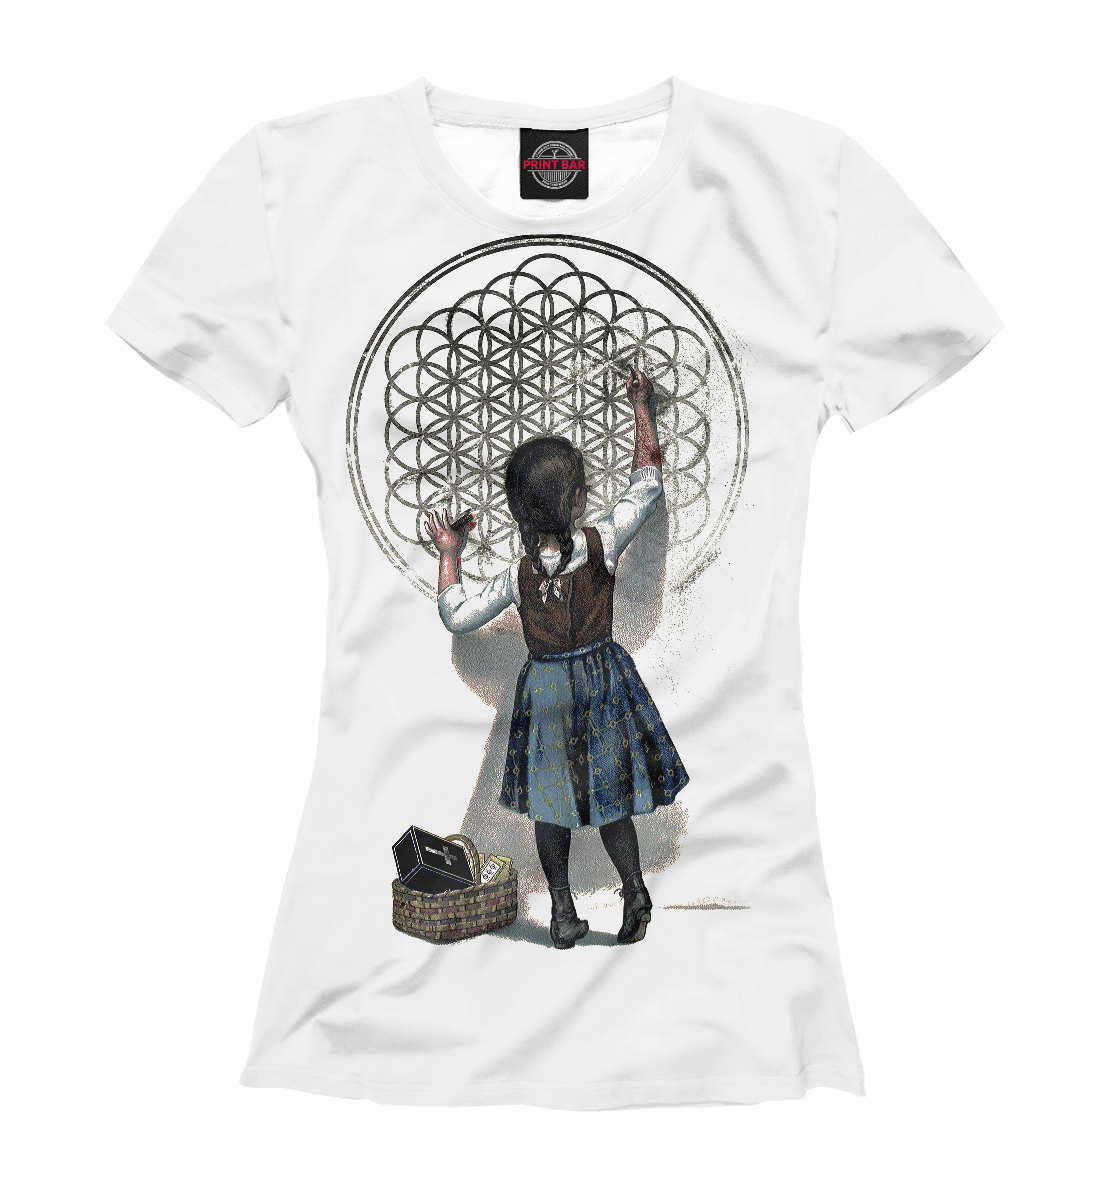 Купить Bring Me the Horizon, Printbar, Футболки, BRI-717186-fut-1